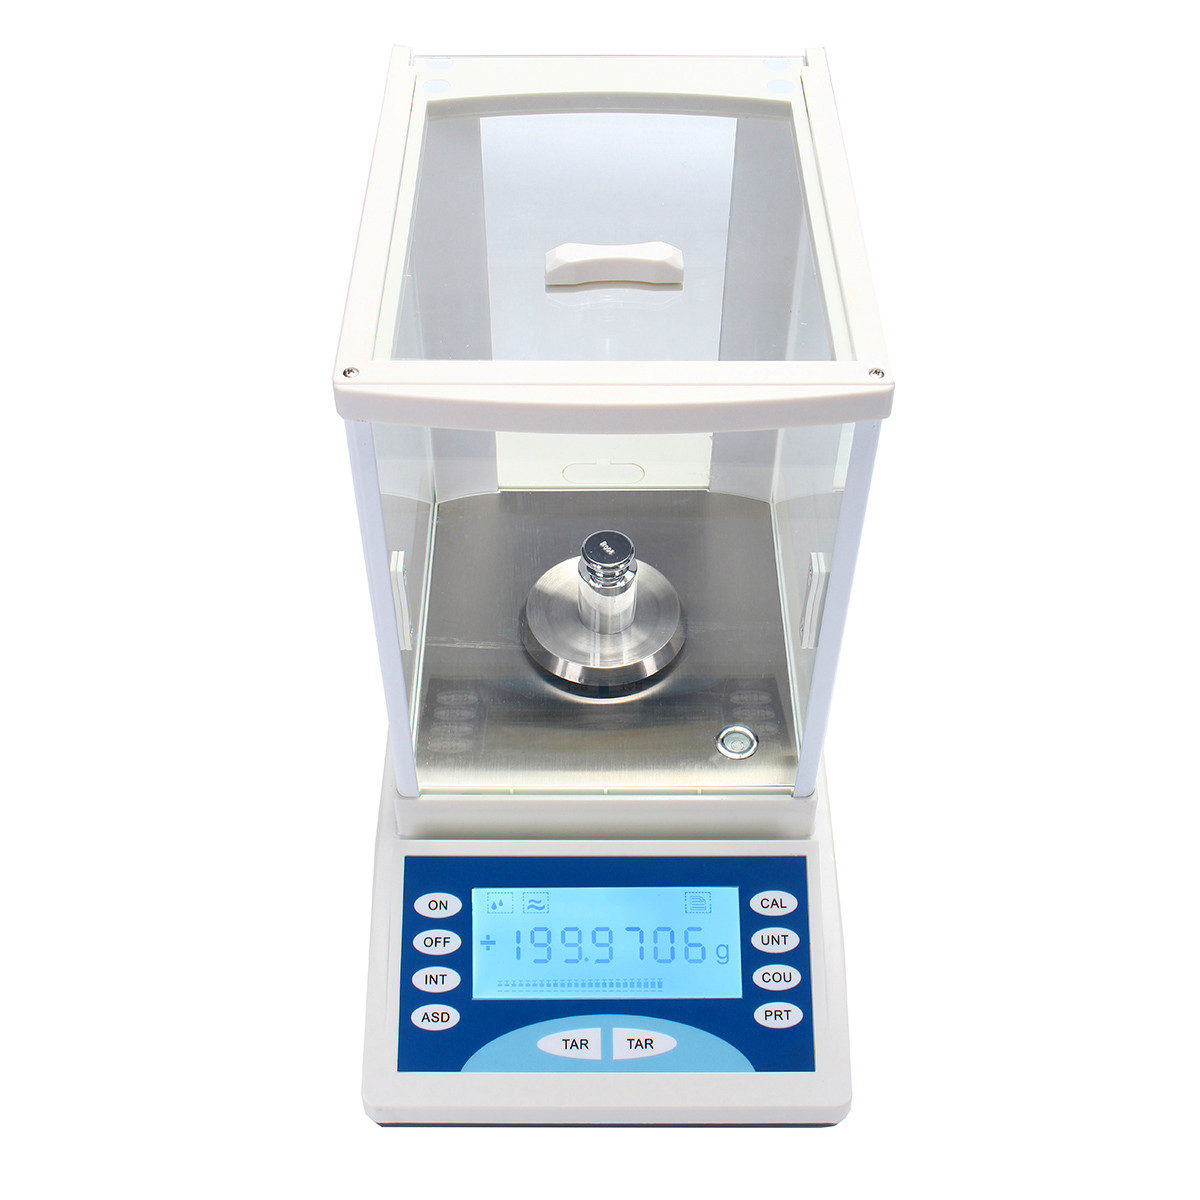 ZEAST 200g/0.1mg Ultra Precision Electronic Balance LCD Digital Electronic Scale Pan Weighing Scale For Lab Measurement Analysis - 5